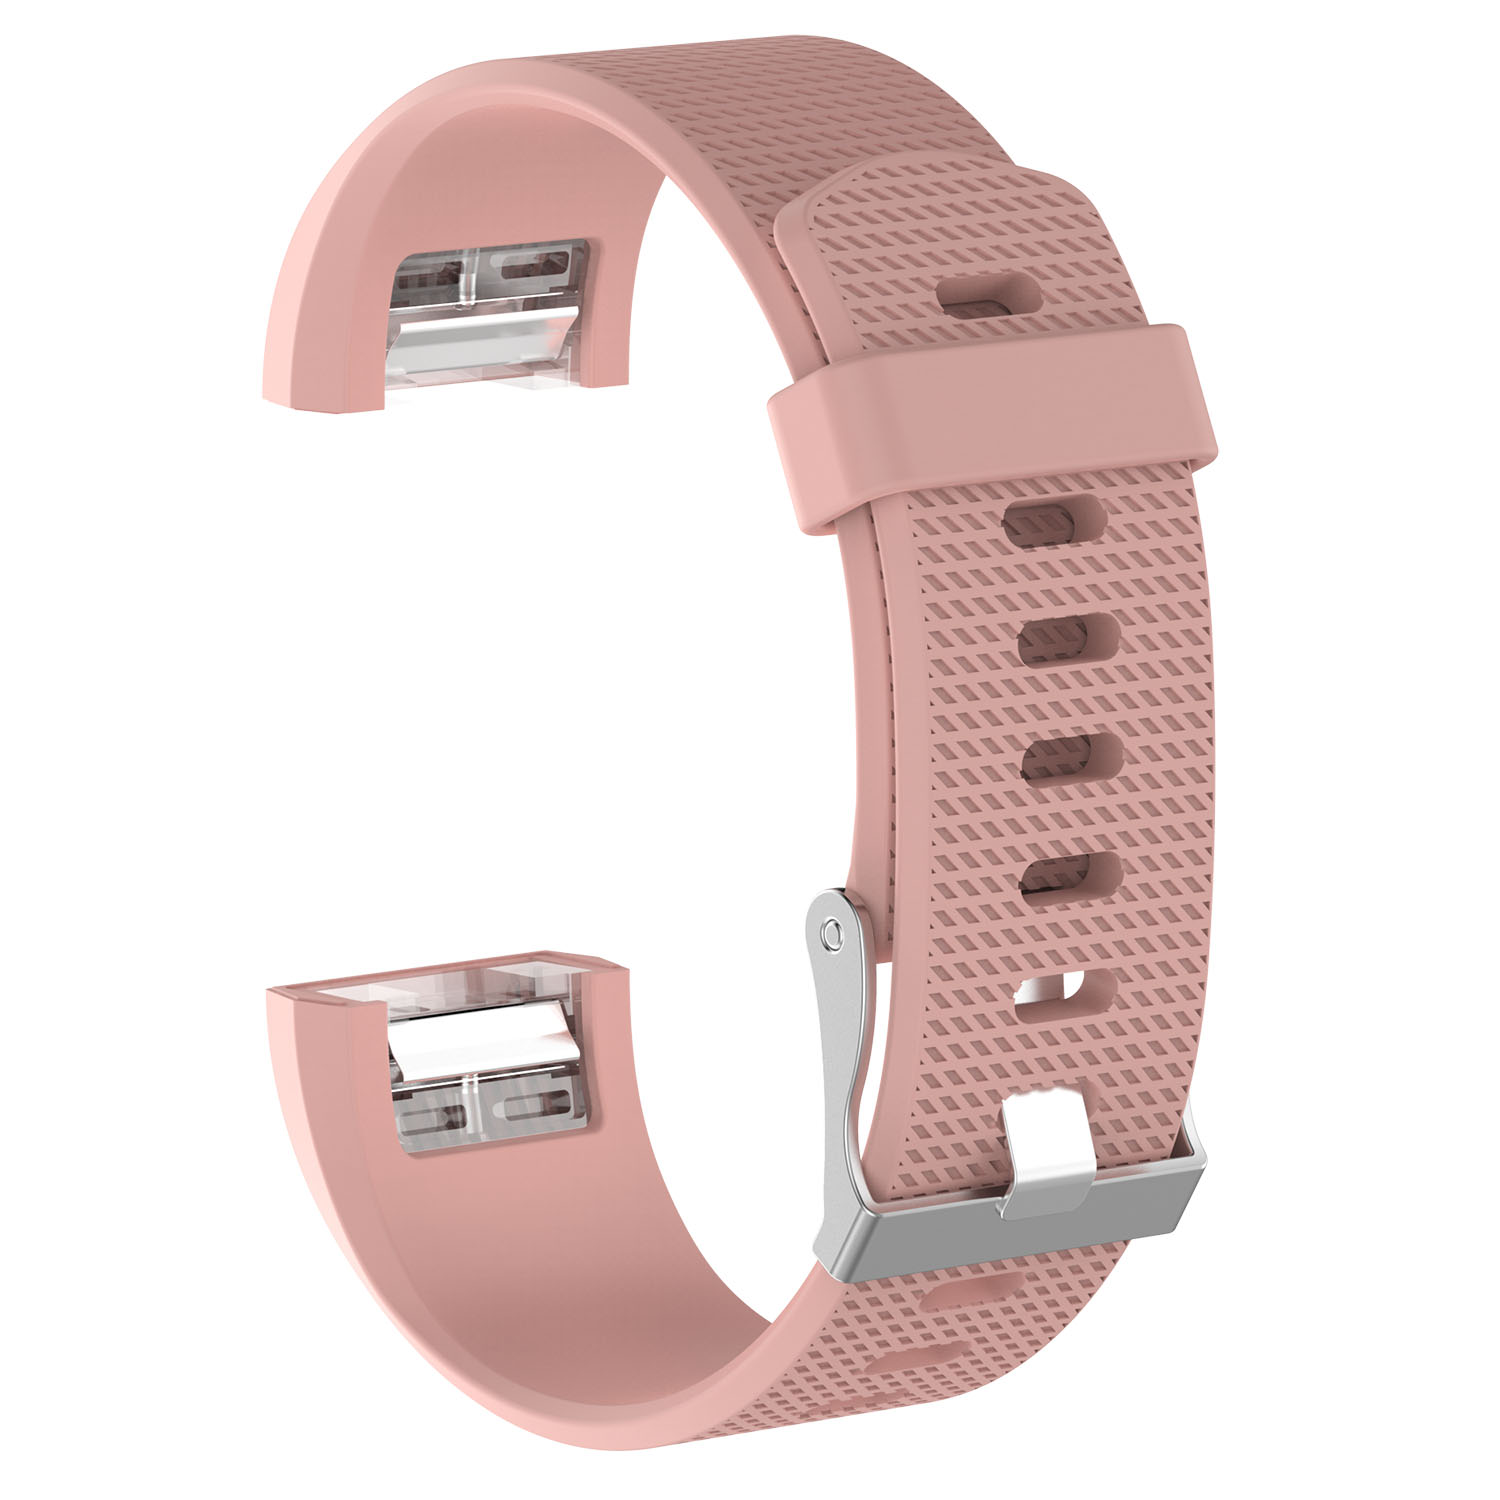 Replacement-Silicone-Wristband-Watch-Strap-Bands-Bracelet-For-Fitbit-Charge-2 thumbnail 29